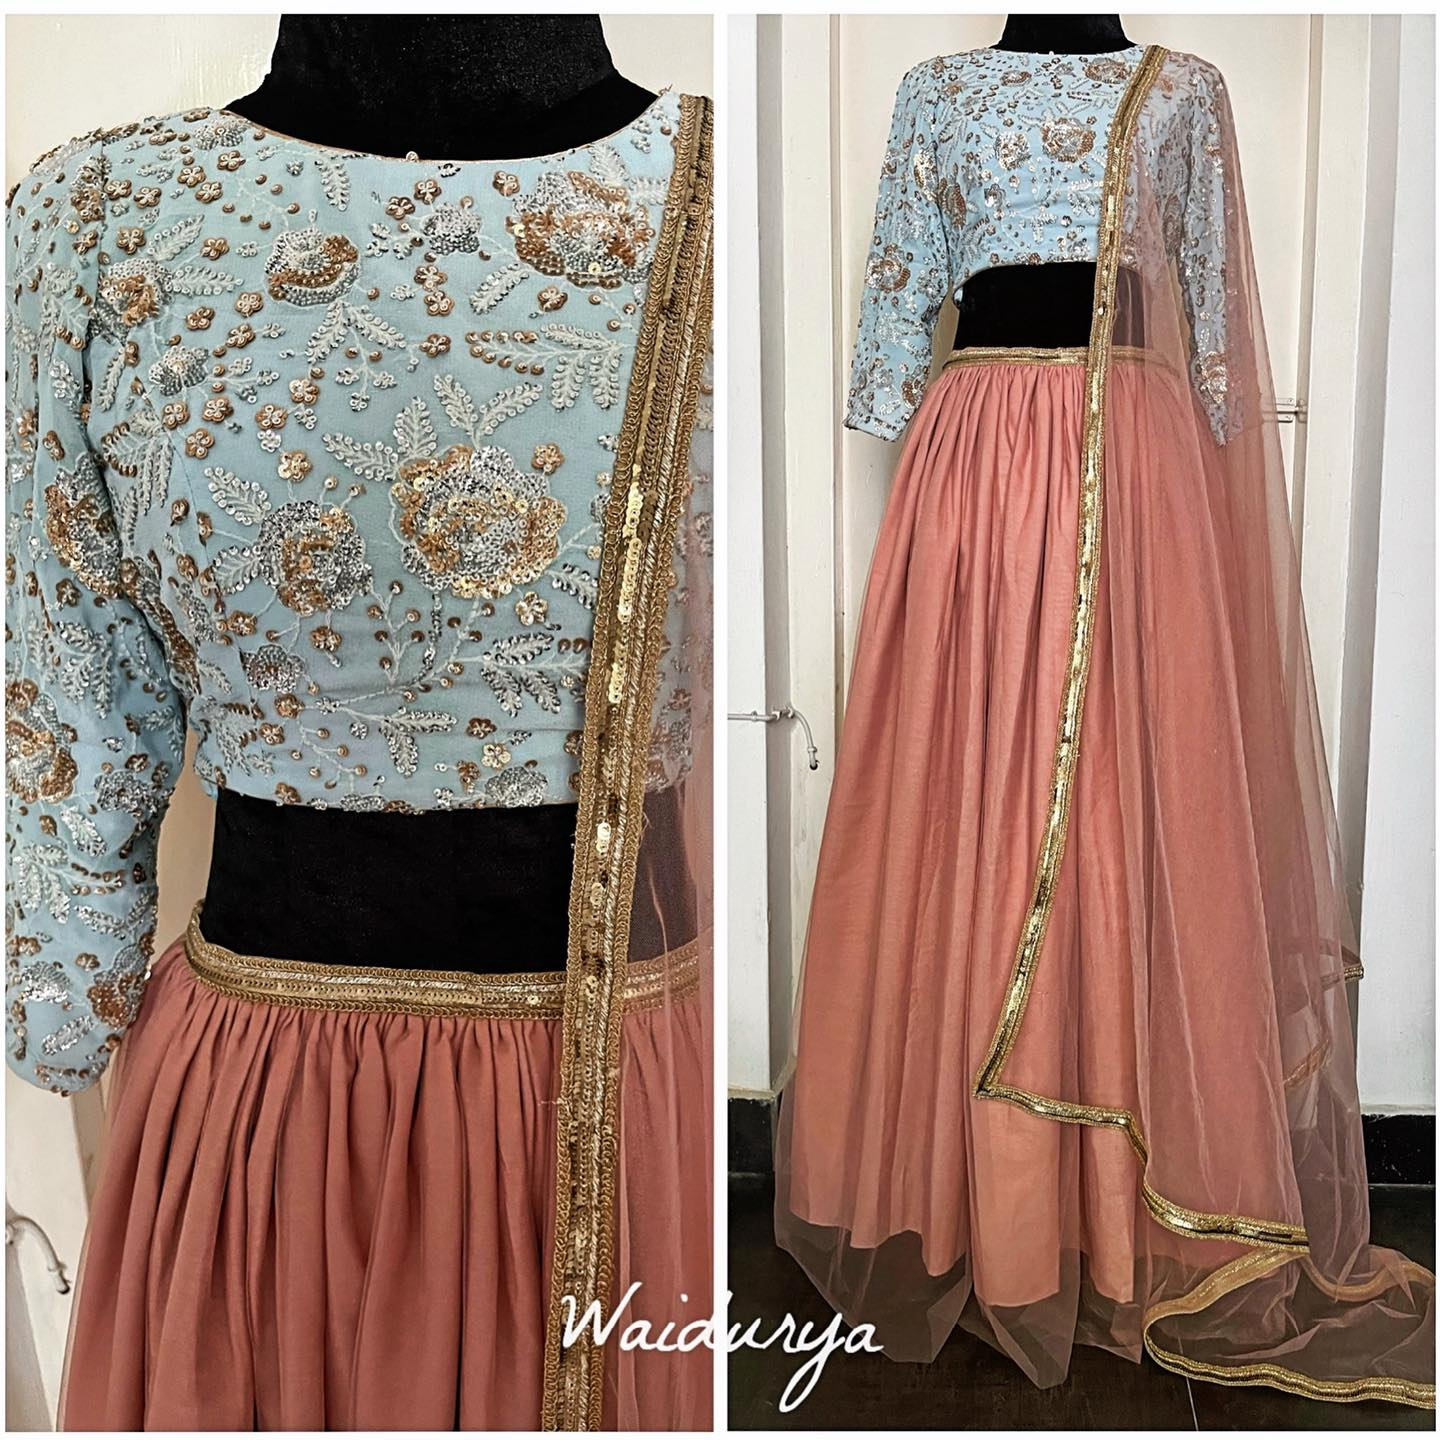 pure georgette powder blue blouse with intricate luxurious sequin thread work and french knot embroidered blouse. The lehenga is a hand dyed soft net one in peony pink with a raw silk lining.  The dupatta is a matching soft net with a gold sequin worked border.  2021-06-23